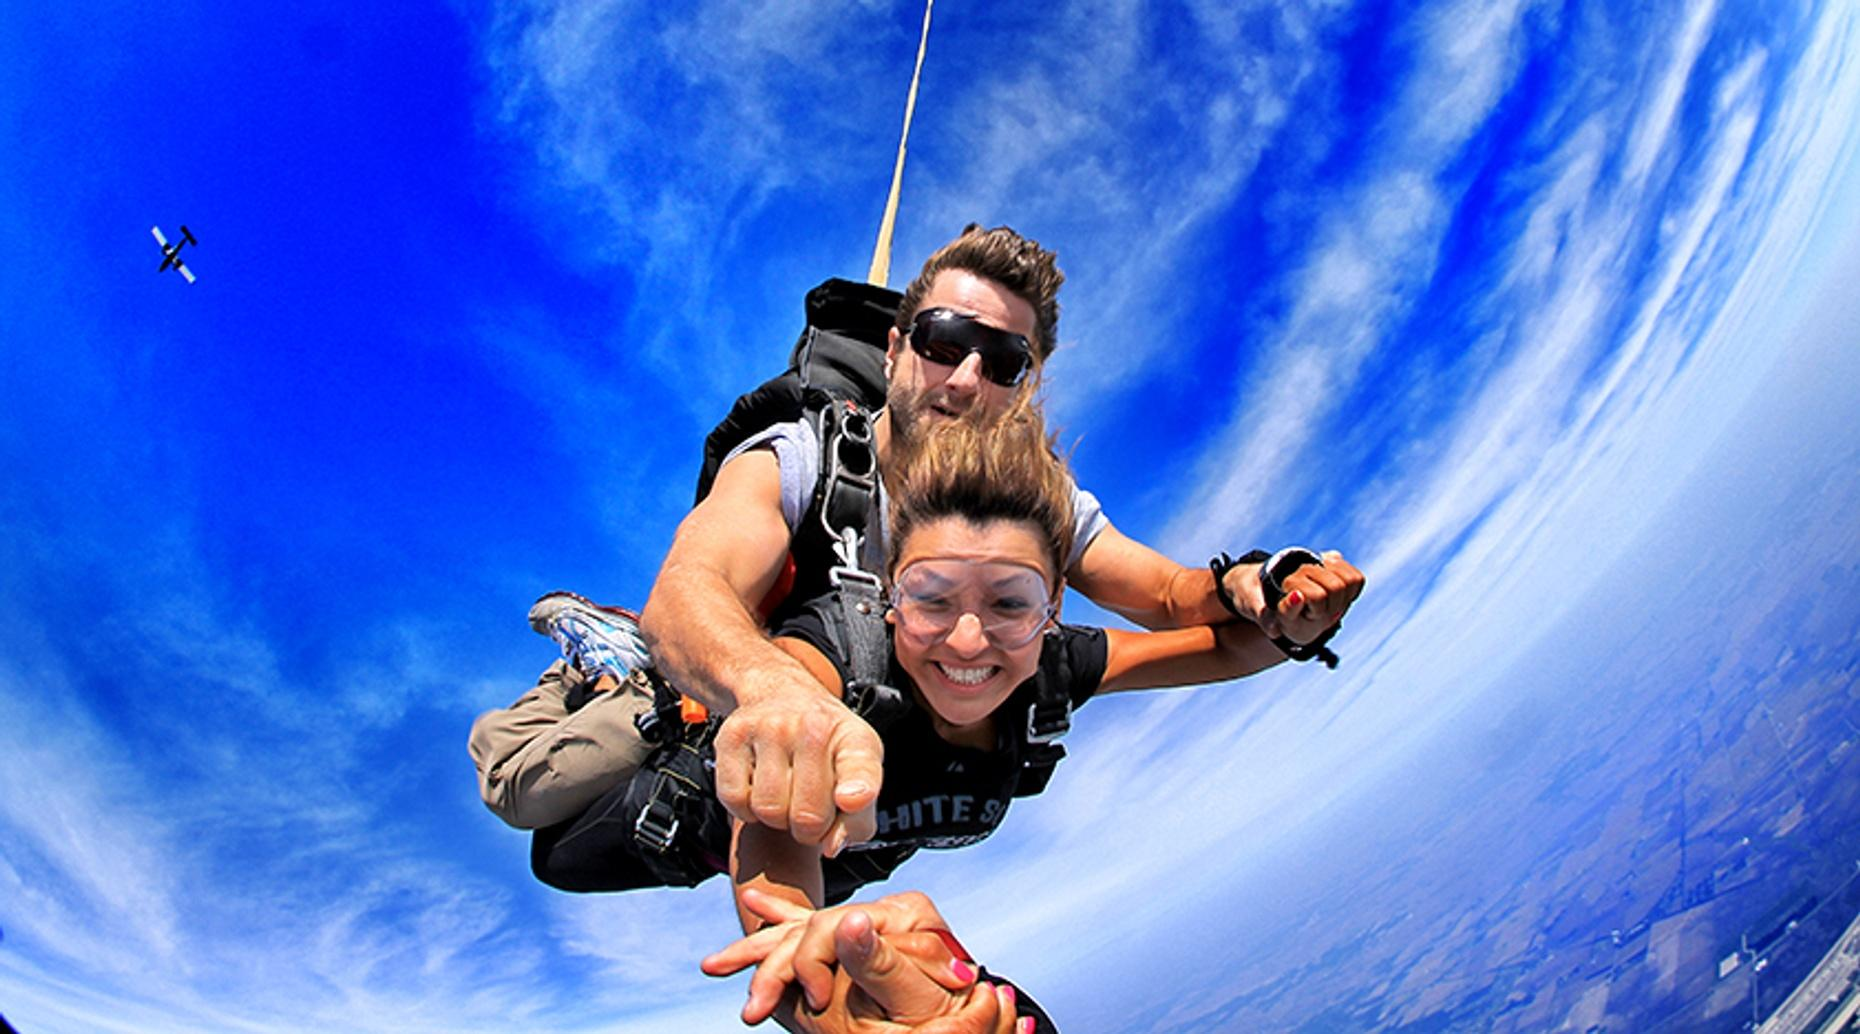 Extreme Tandem Skydive in Rochelle